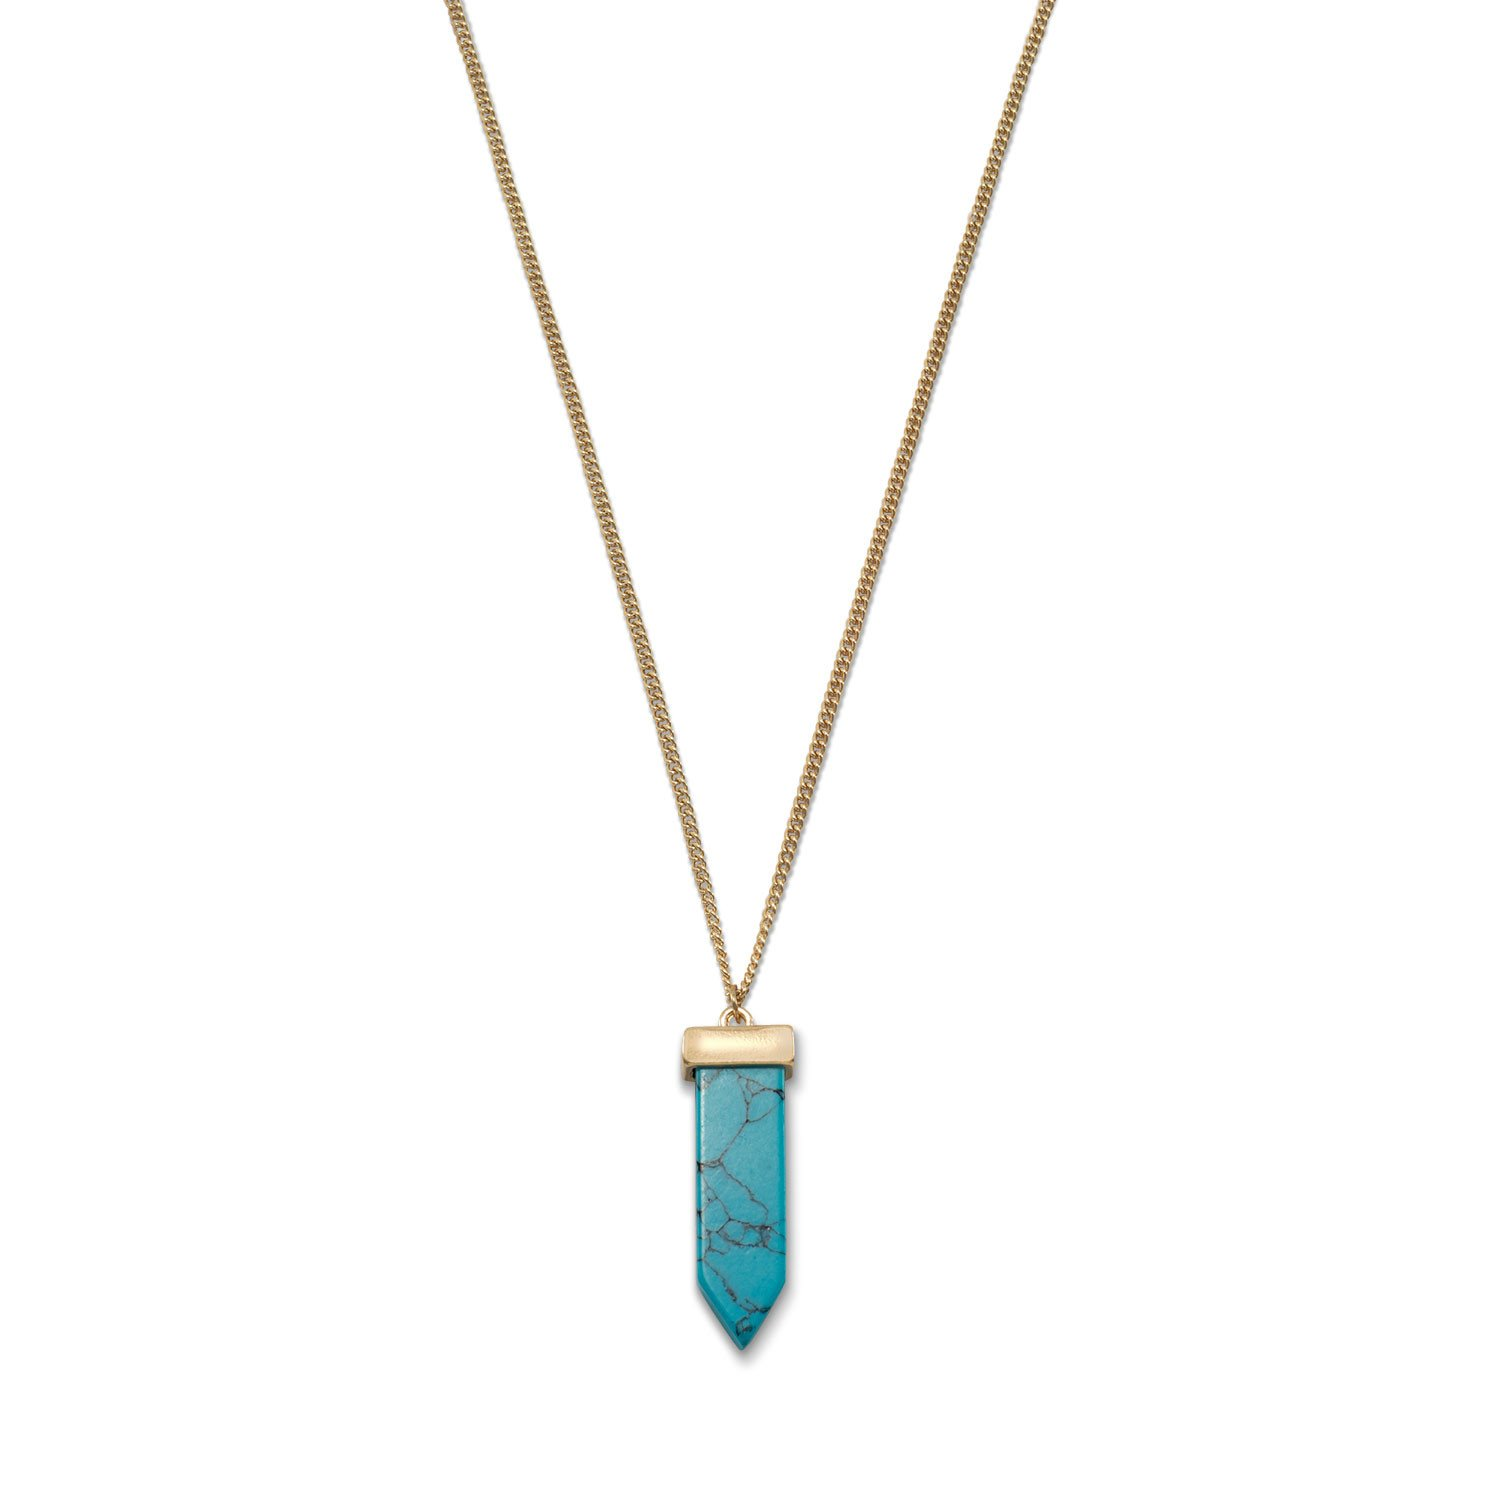 14 Karat Gold Plated Magensite Spike Fashion Necklace